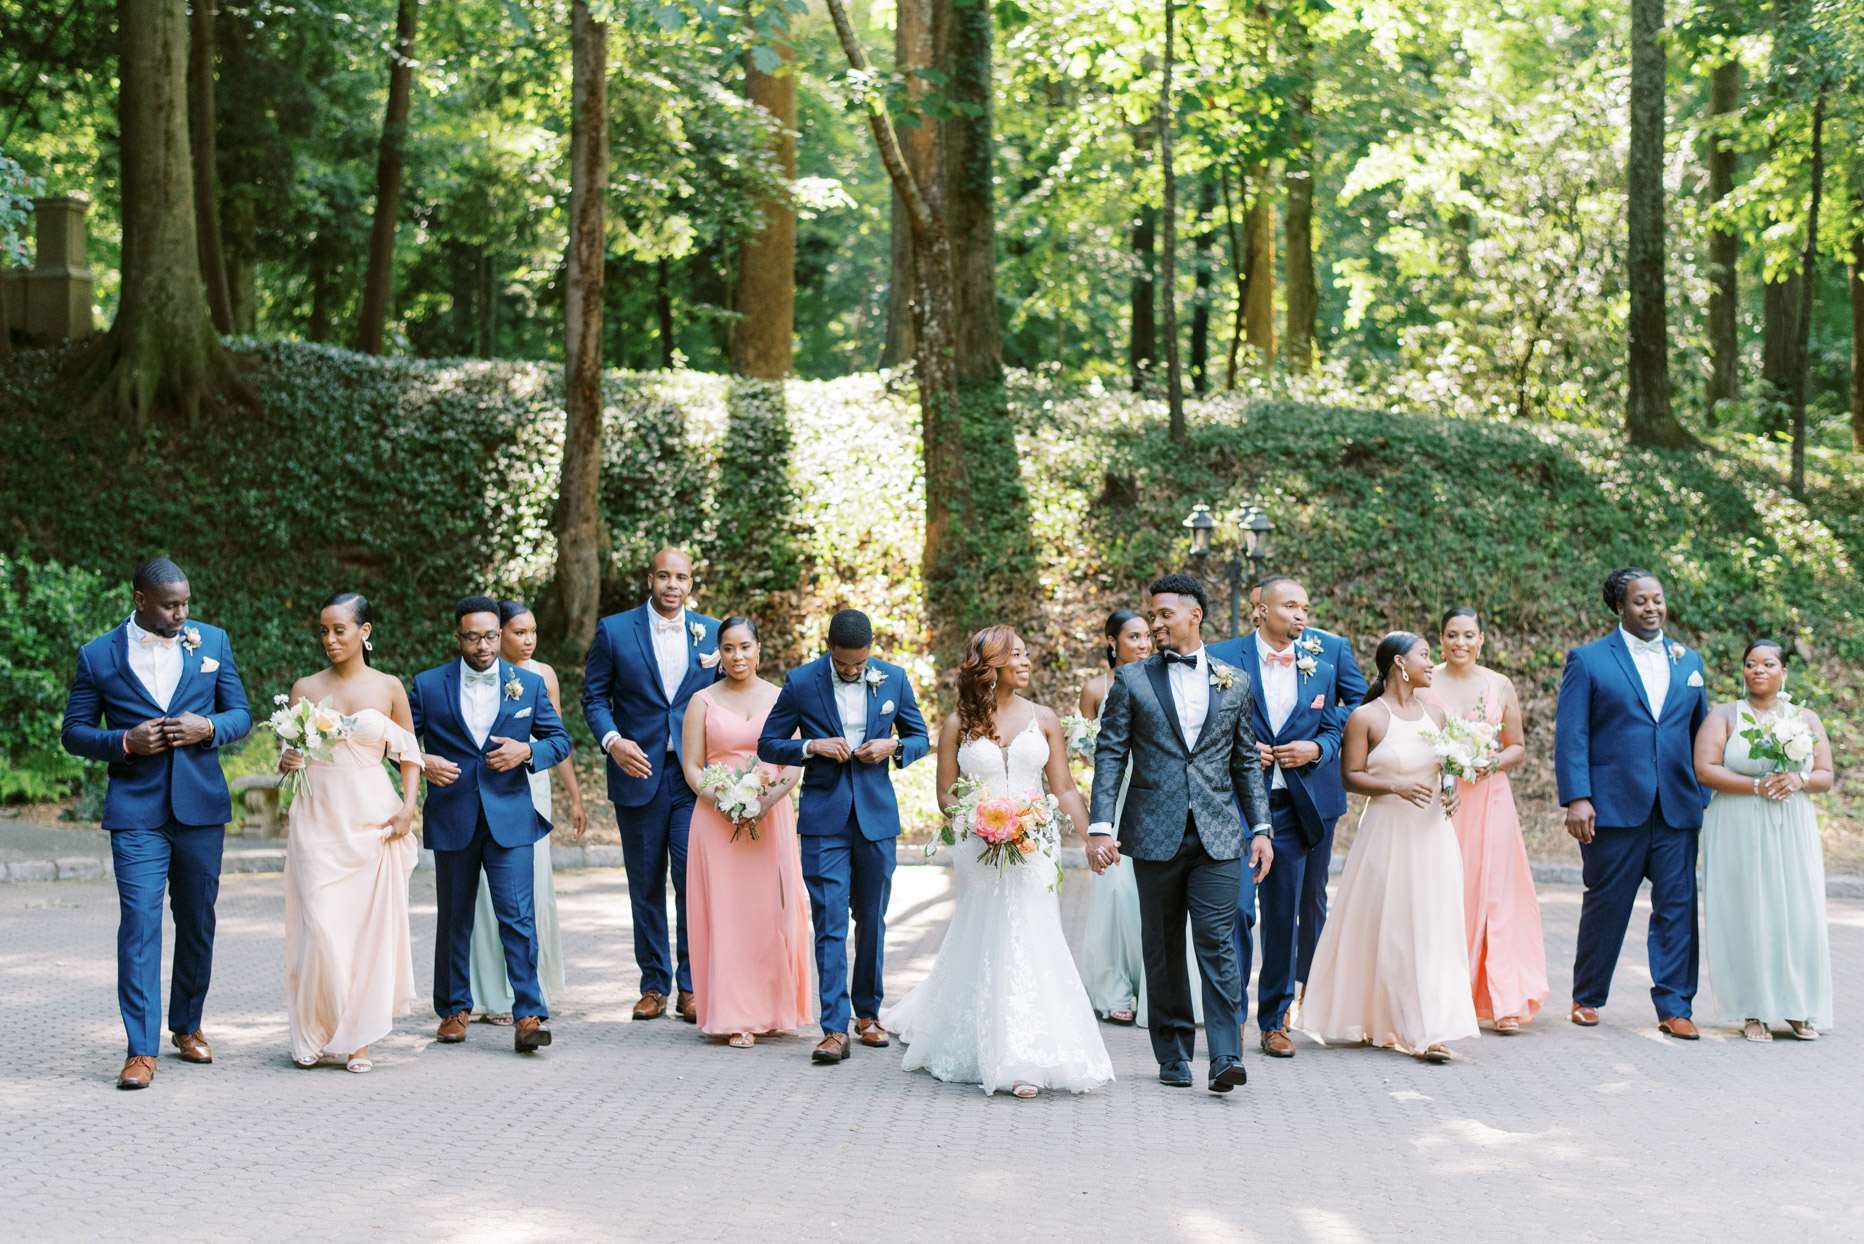 bride and groom walking with wedding party outside